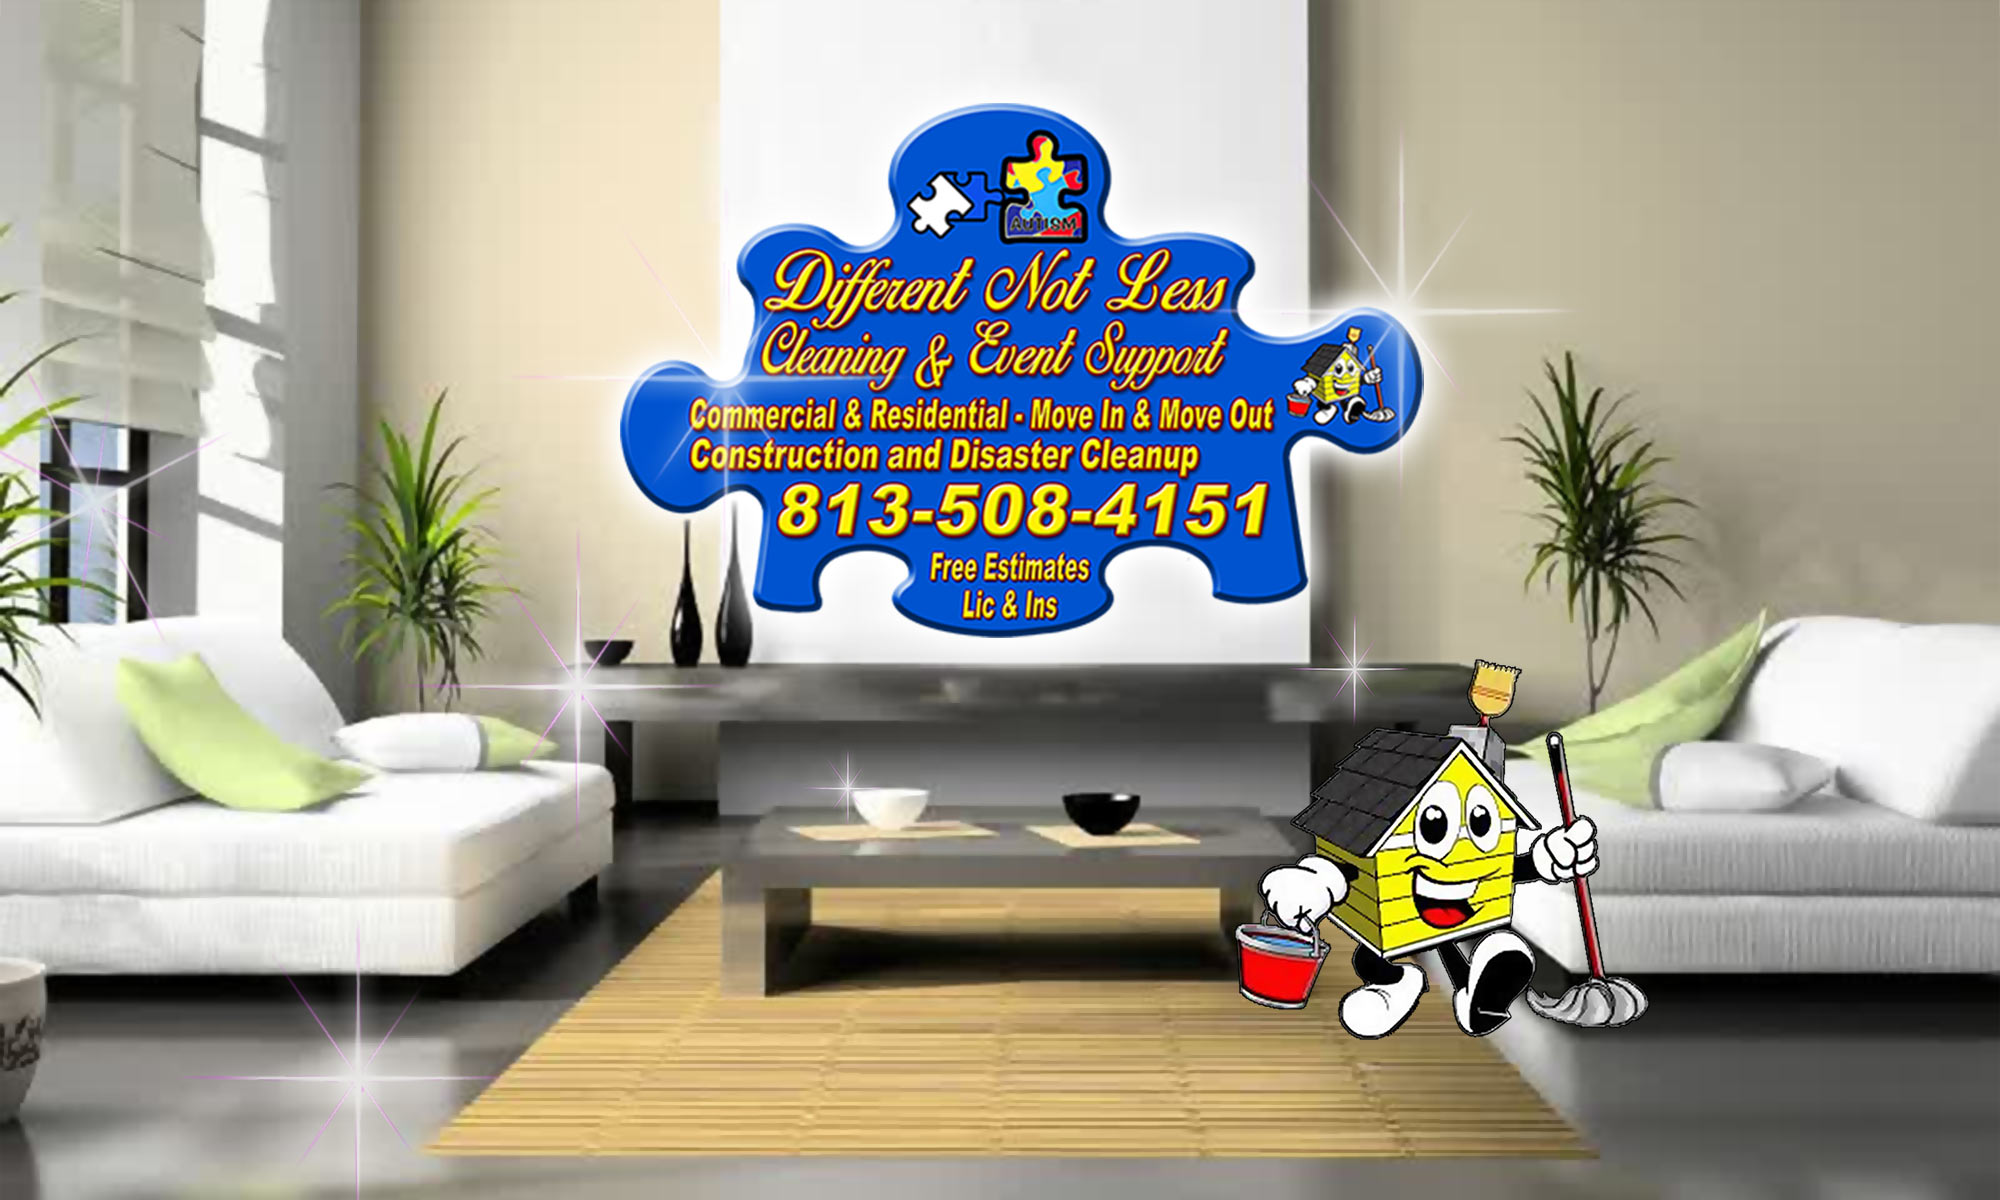 DNL Cleaning